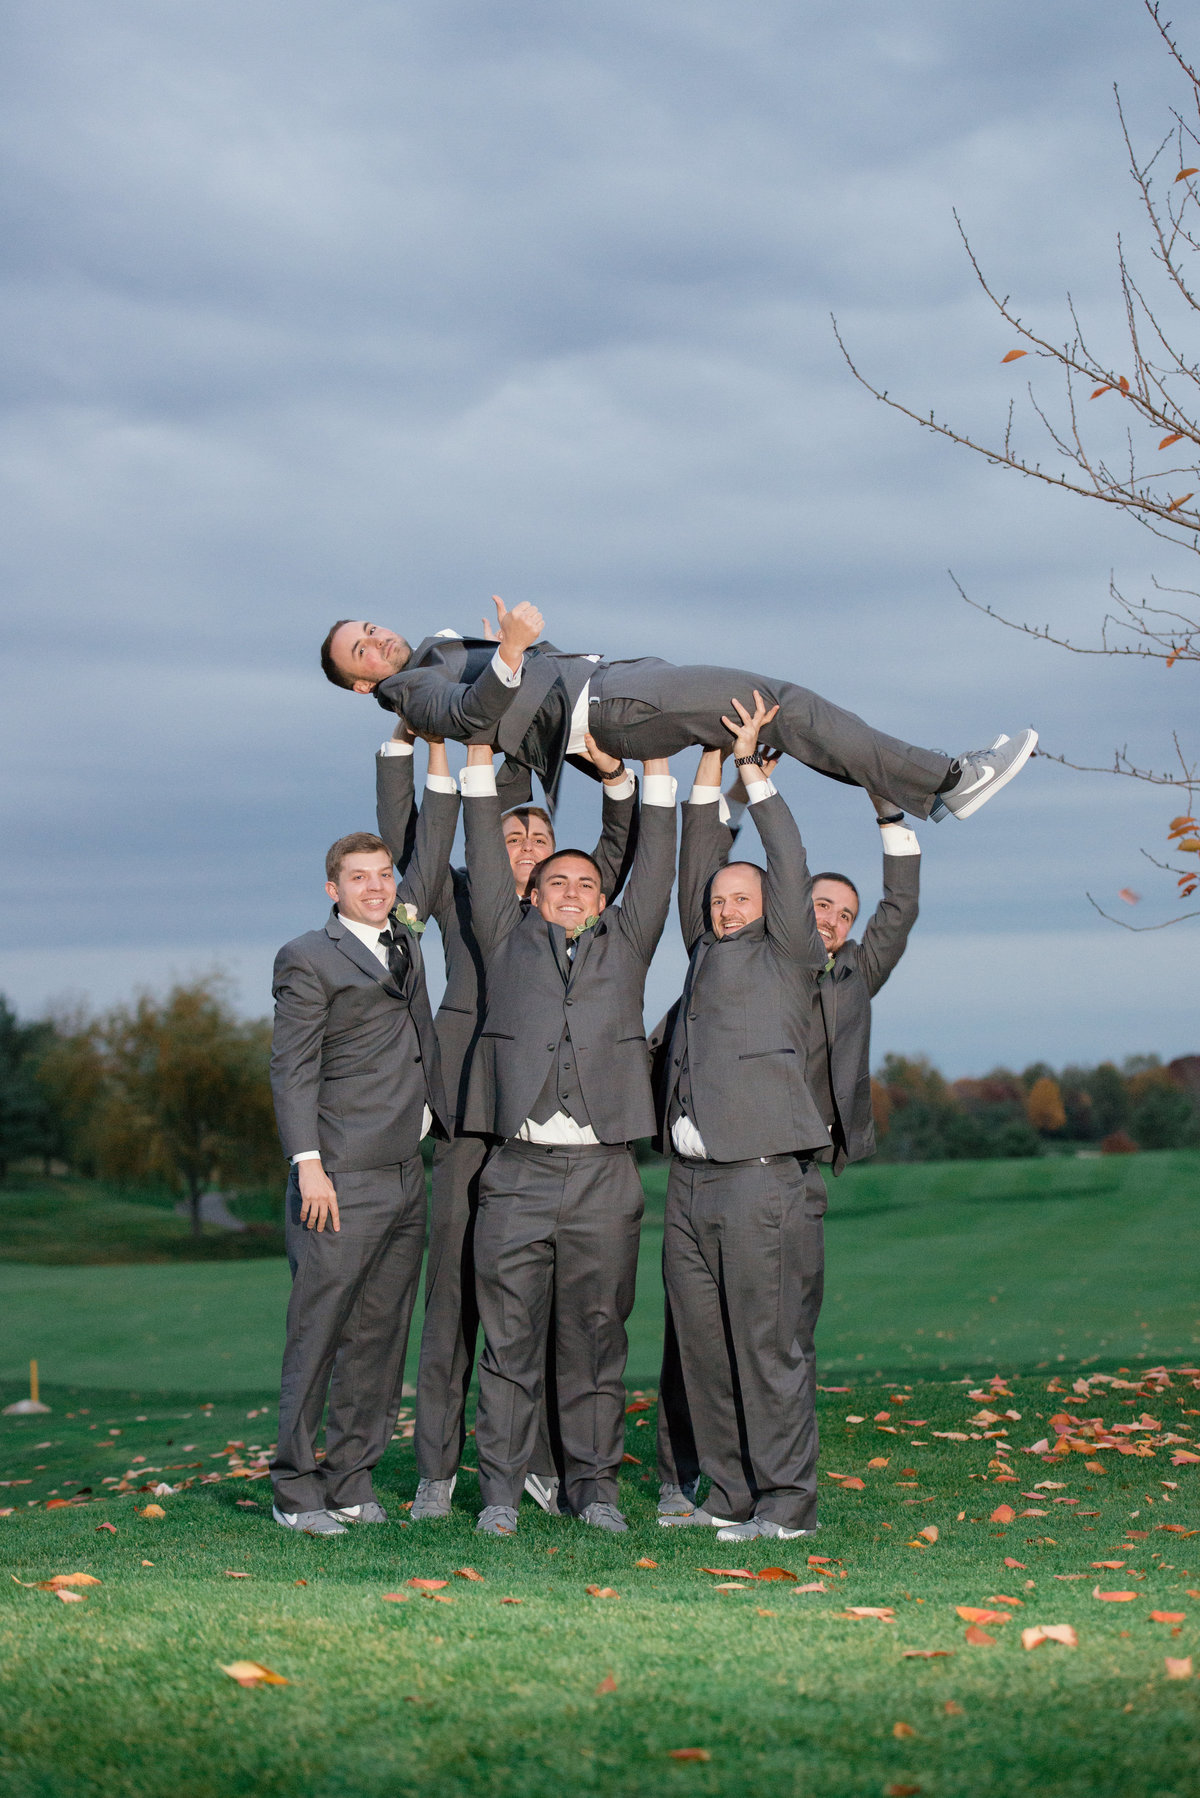 groomsmen holding up the groom on the golf course at Willow Creek Golf and Country Club